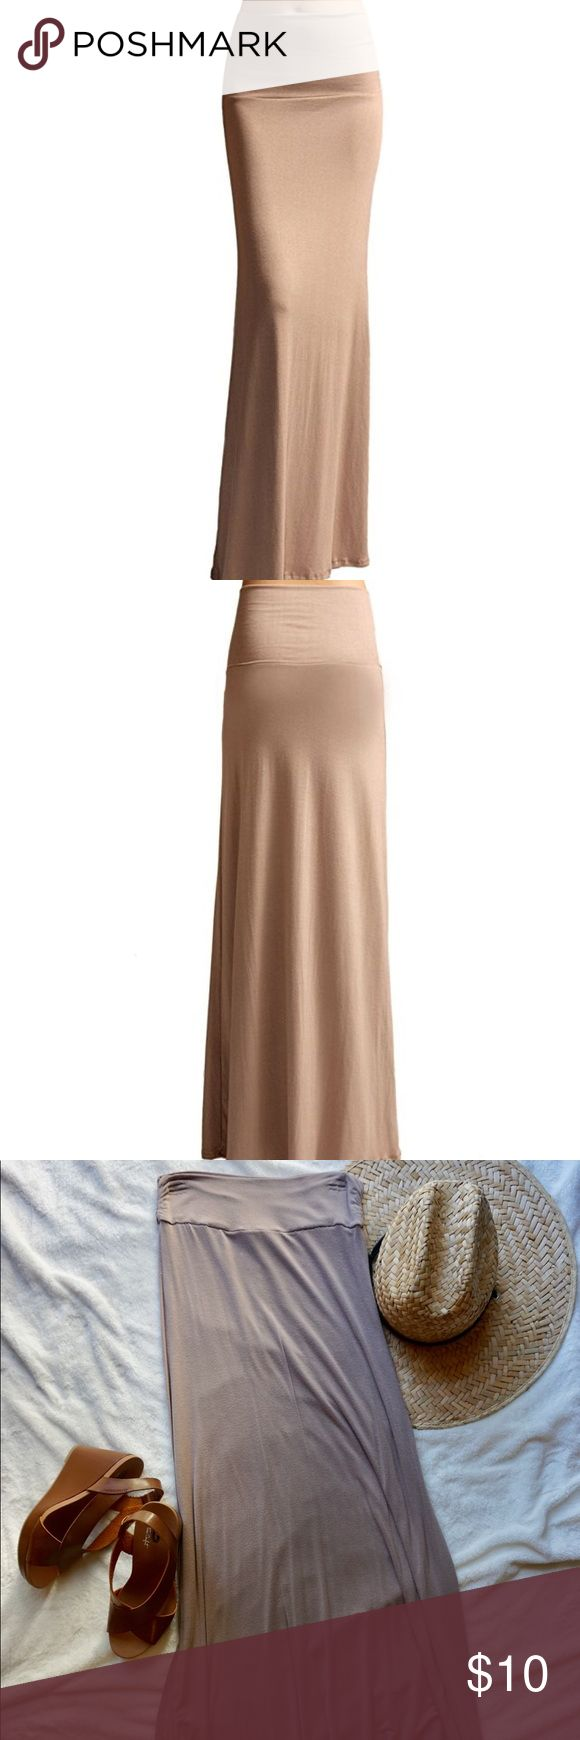 Tan Maxi Skirt Soft maxi skirt. Tan color. Stretchy material, great condition! Some light pilling but no stains or rips. Very flattering fit hugs your curves and slims the waist.❤️ Skirts Maxi